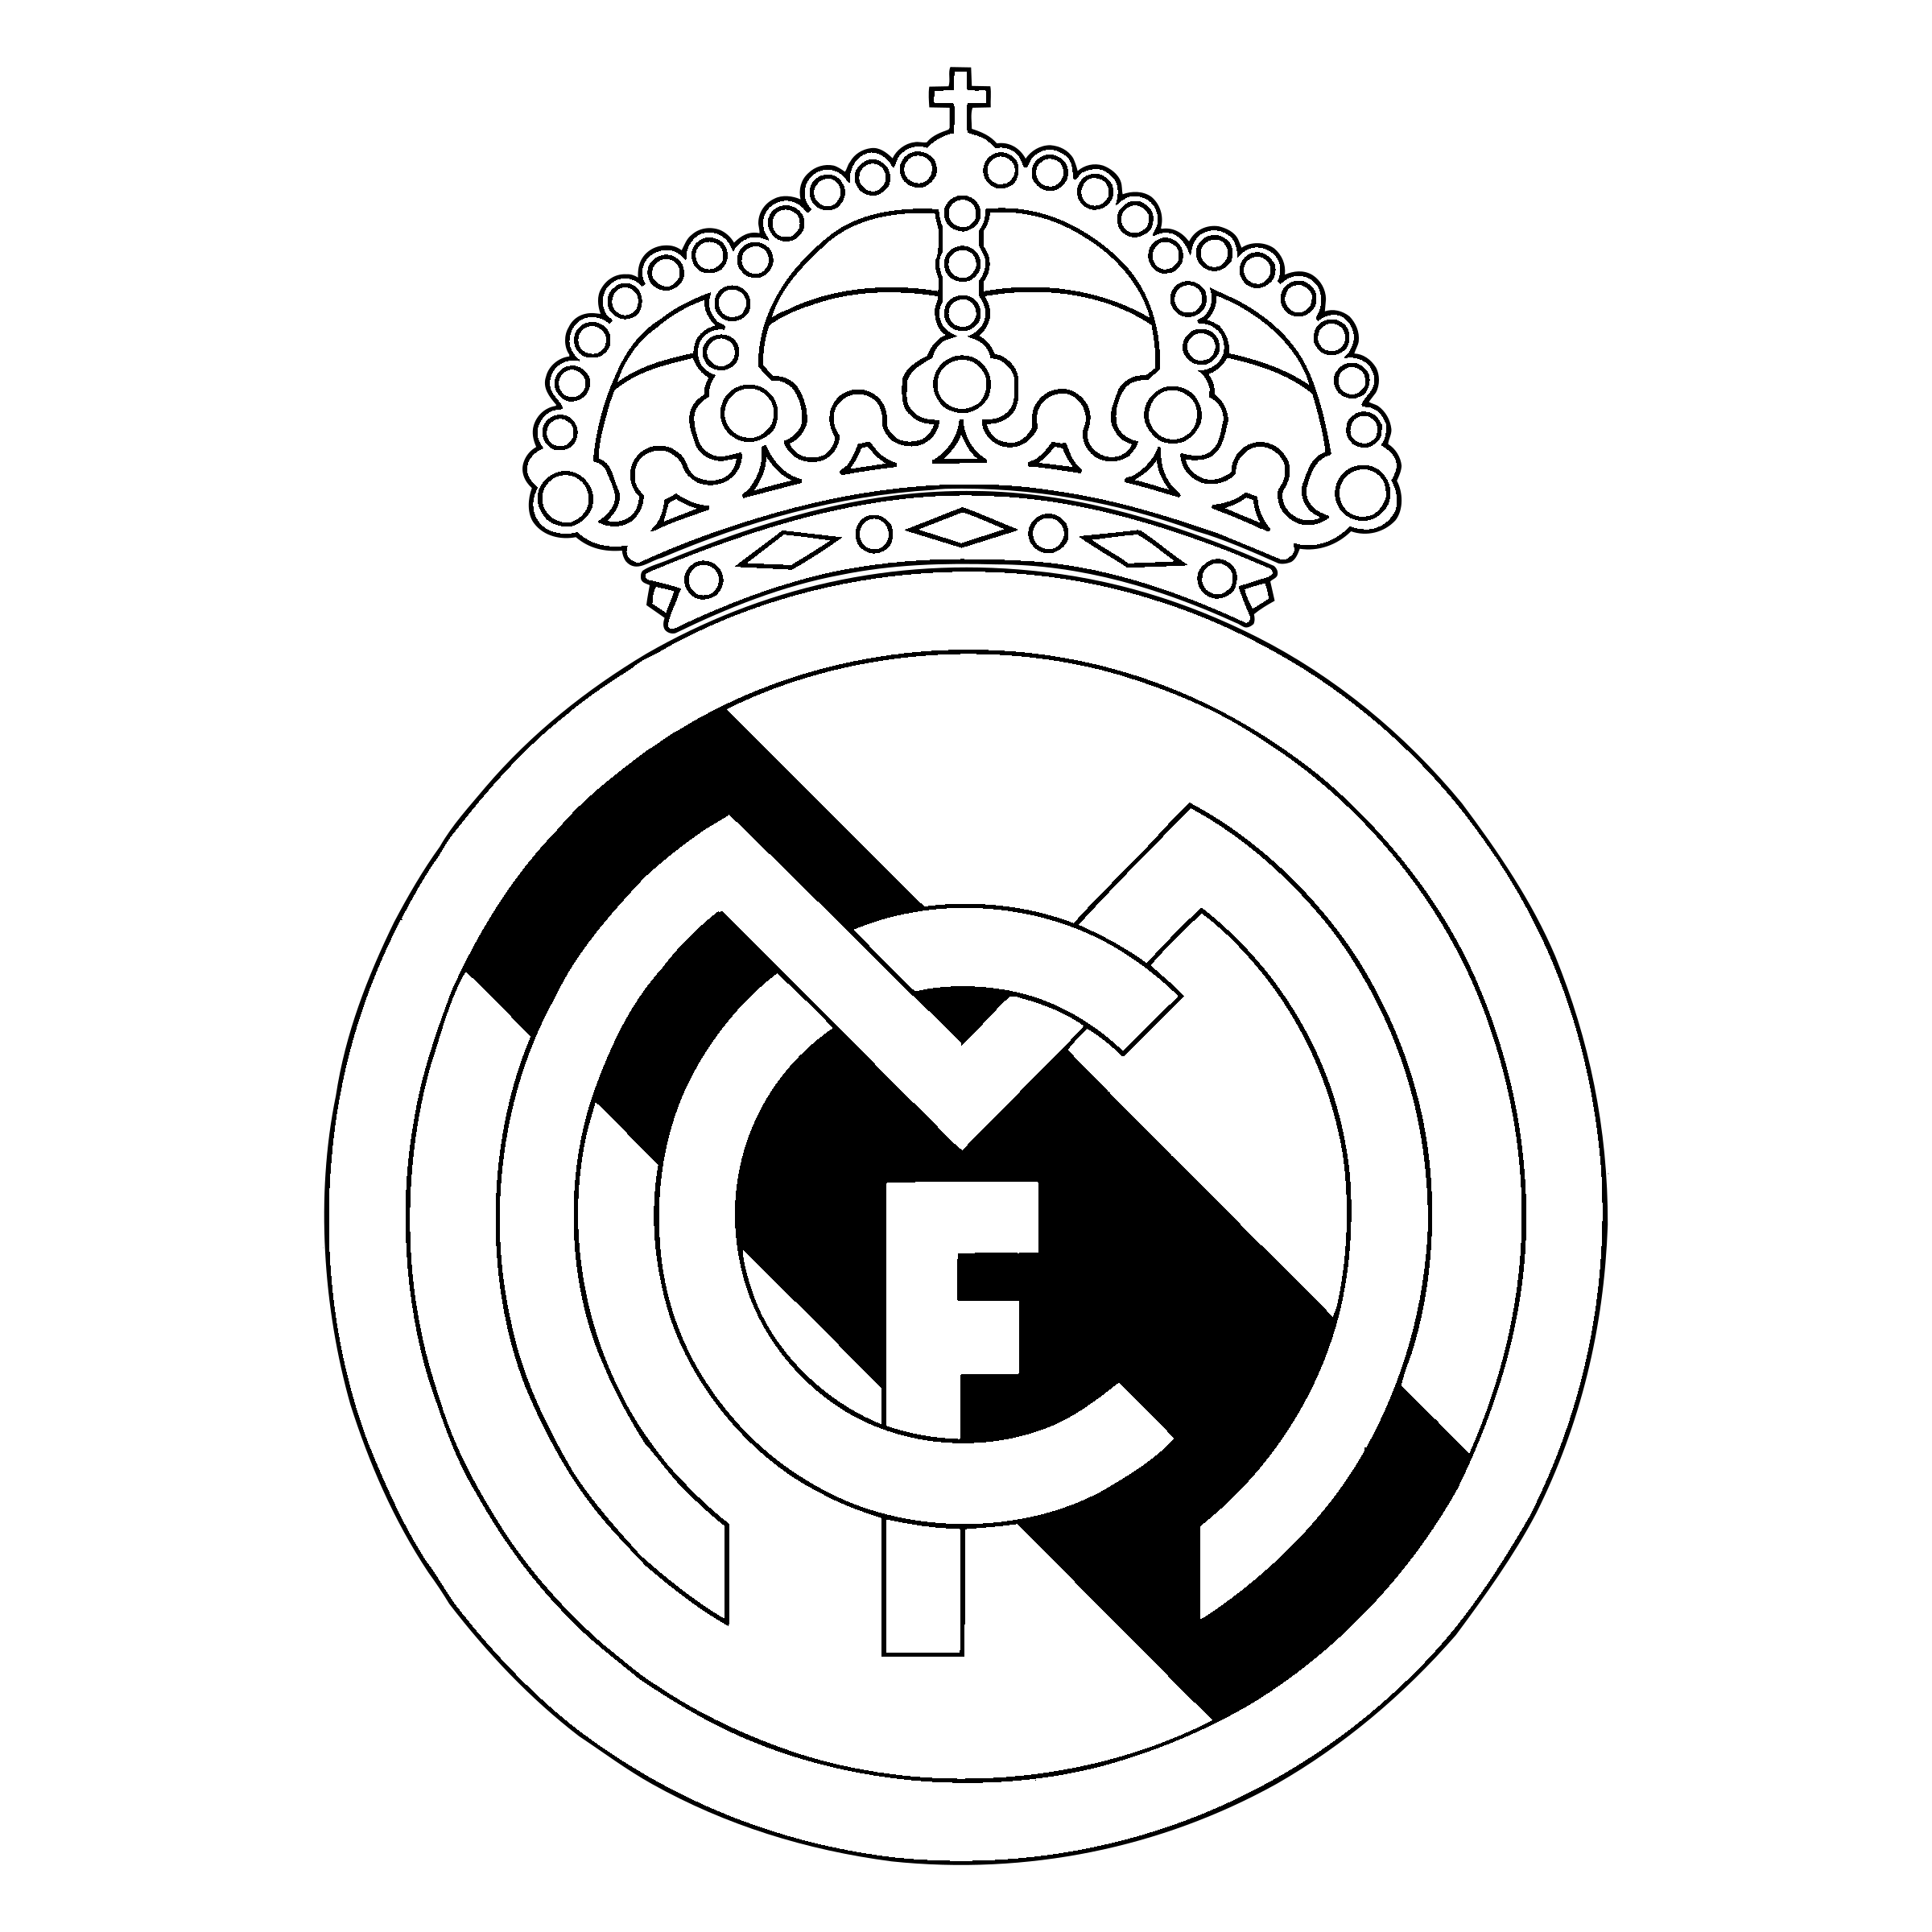 Real Madrid Cf Logo Black And White.